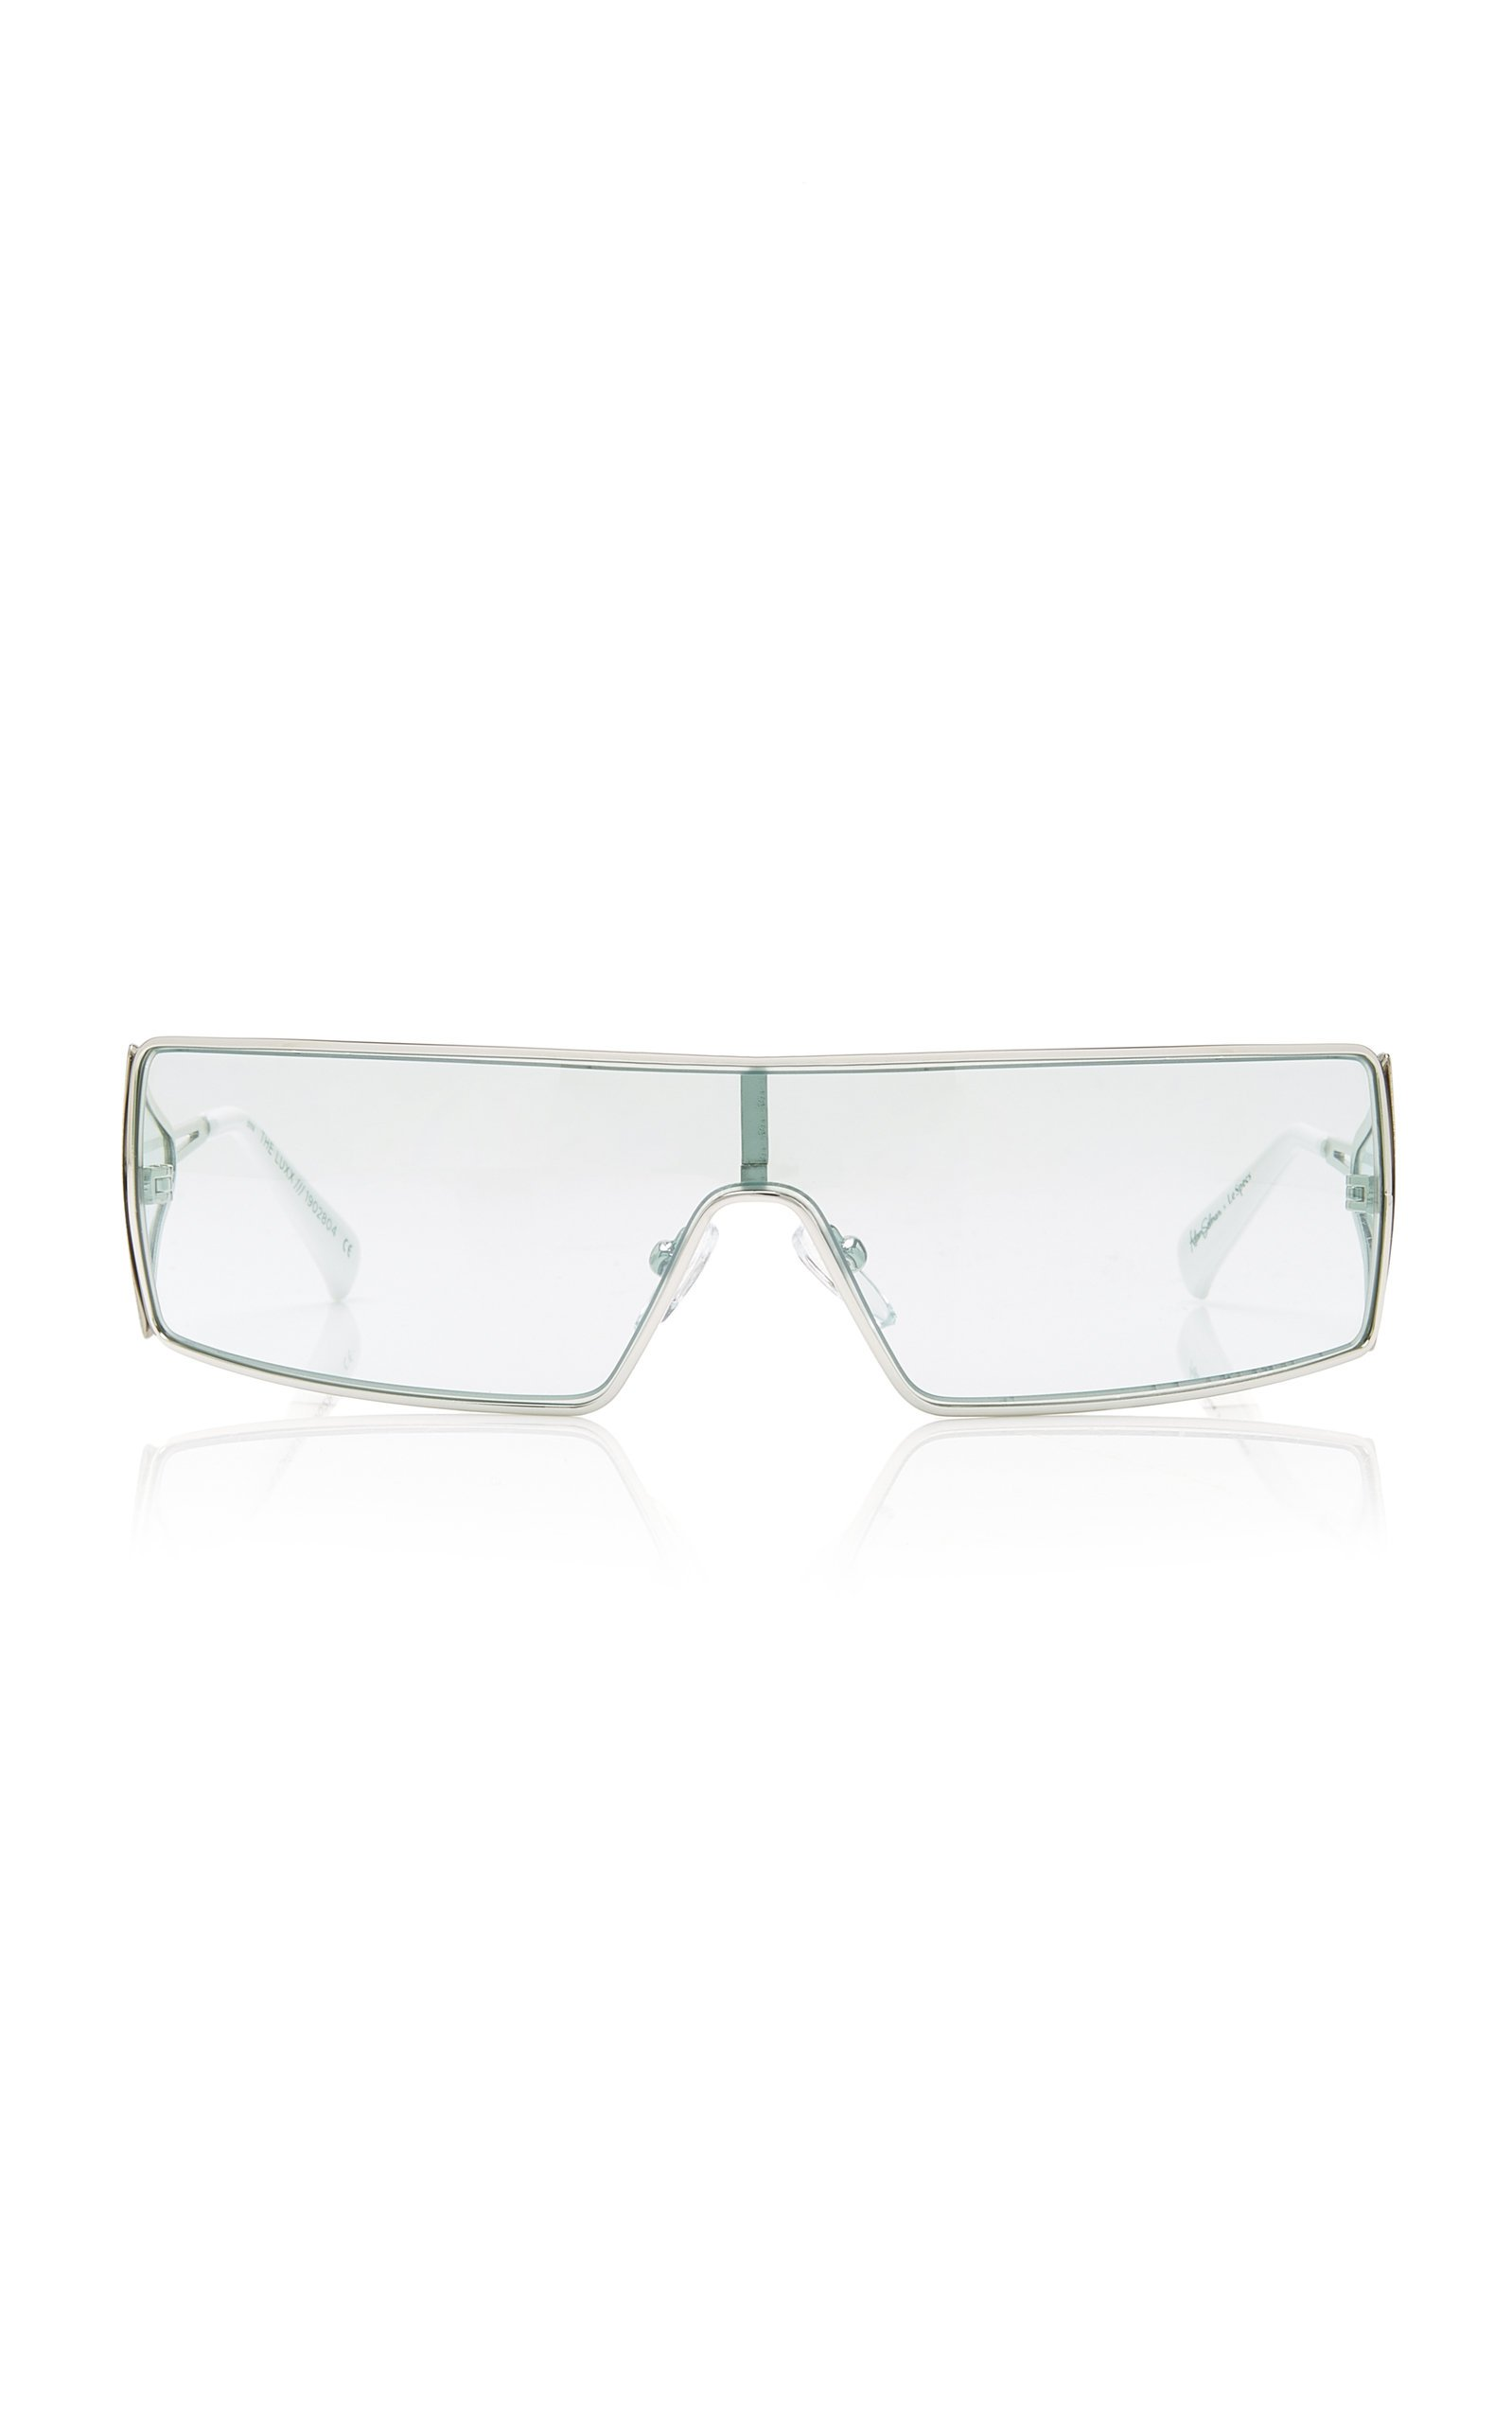 Adam Selman X Le Specs The Luxx Metal Square-Frame Sunglasses